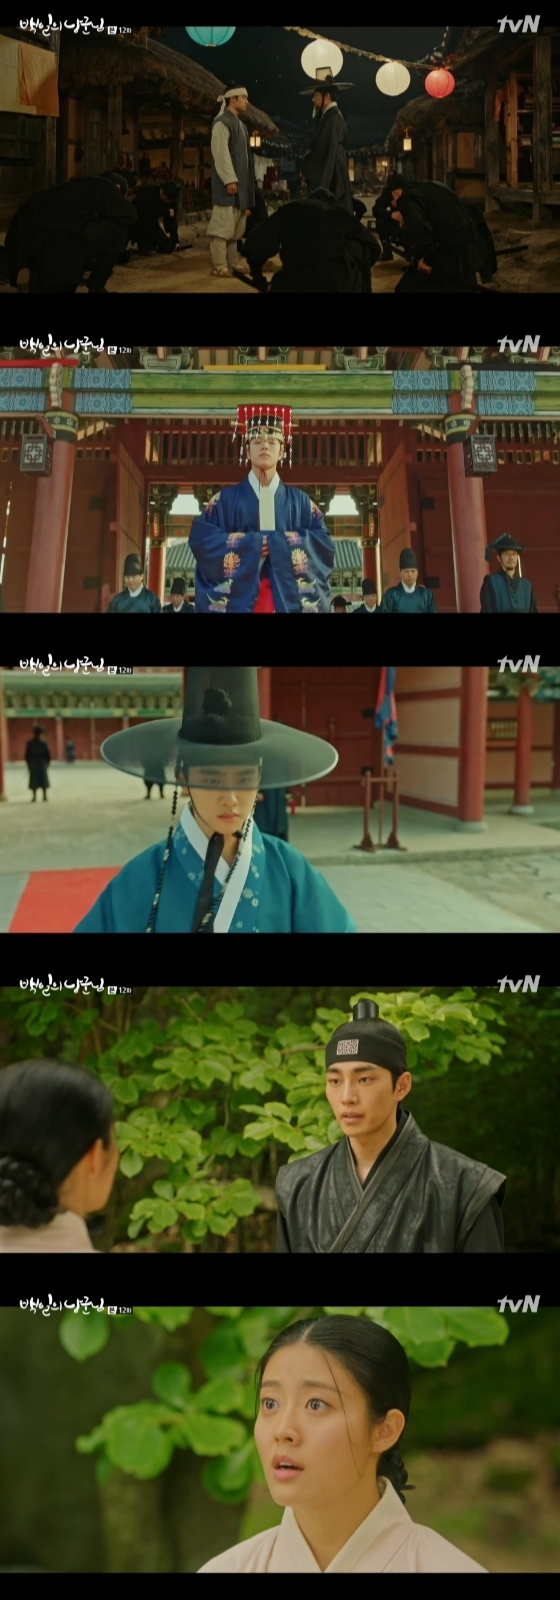 100 Days My Prince Episode 16 : prince, episode, Naver], Prince', Episode, Netizen, Reactions, Nation, OneHallyu